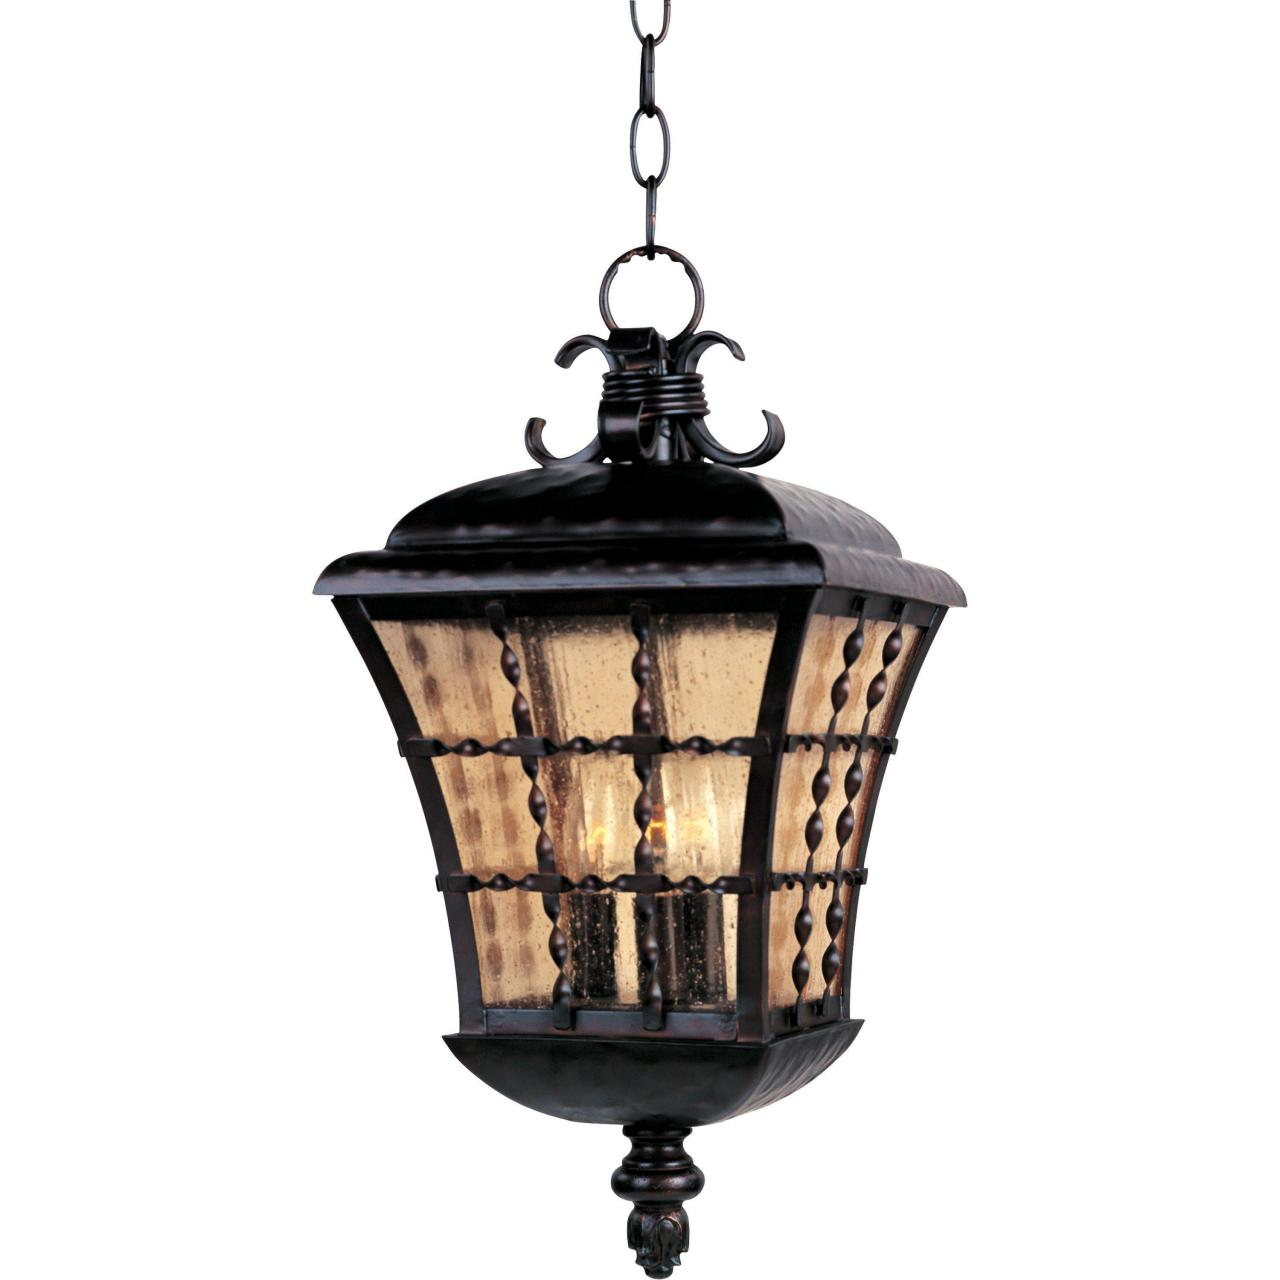 Buy cheap Various Screw In Pendant Light Fixture To Style The from wholesalers